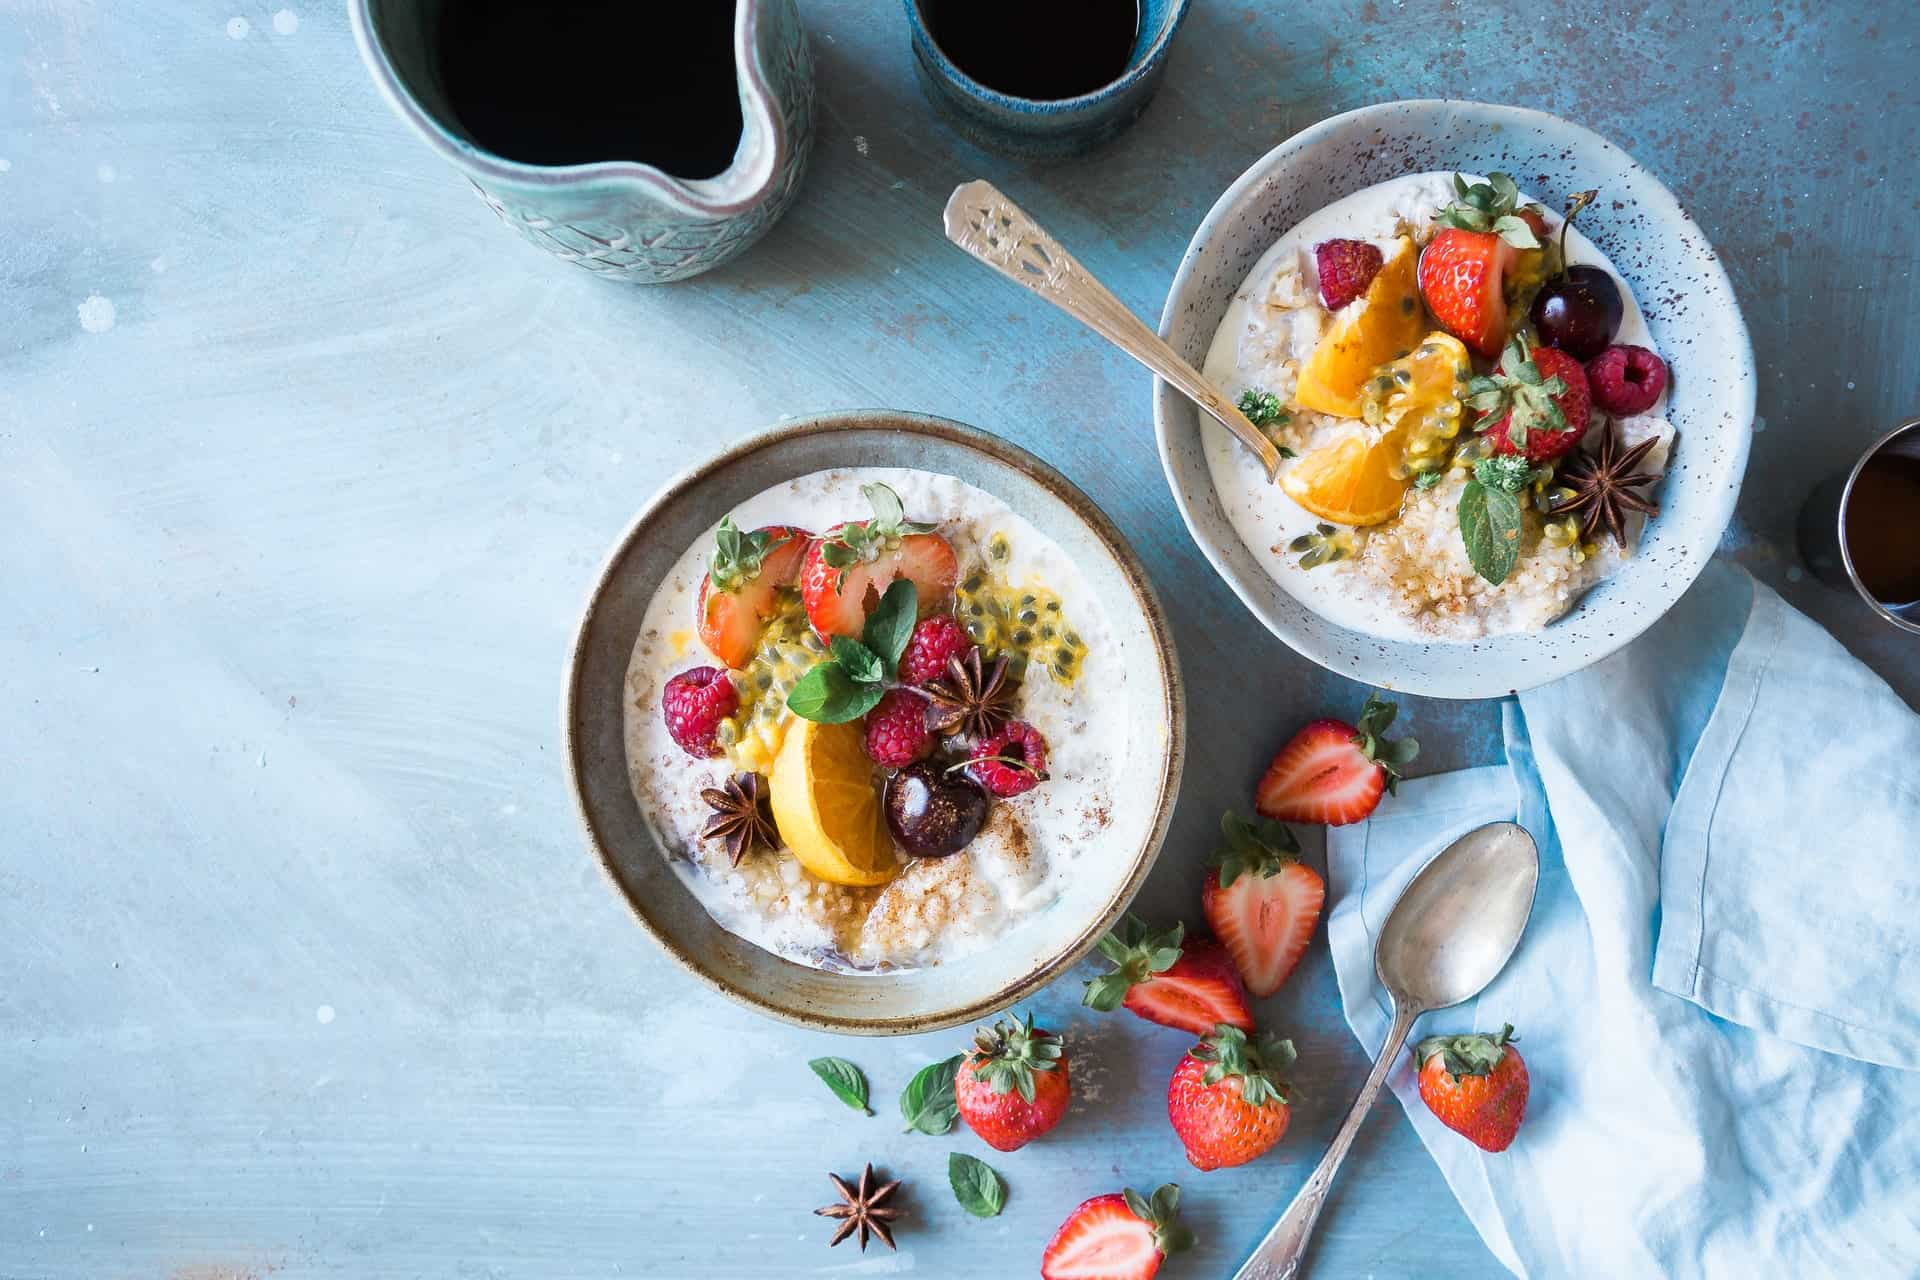 Need Tips For Better Healthy Vegetarian Breakfast? We Got You Covered